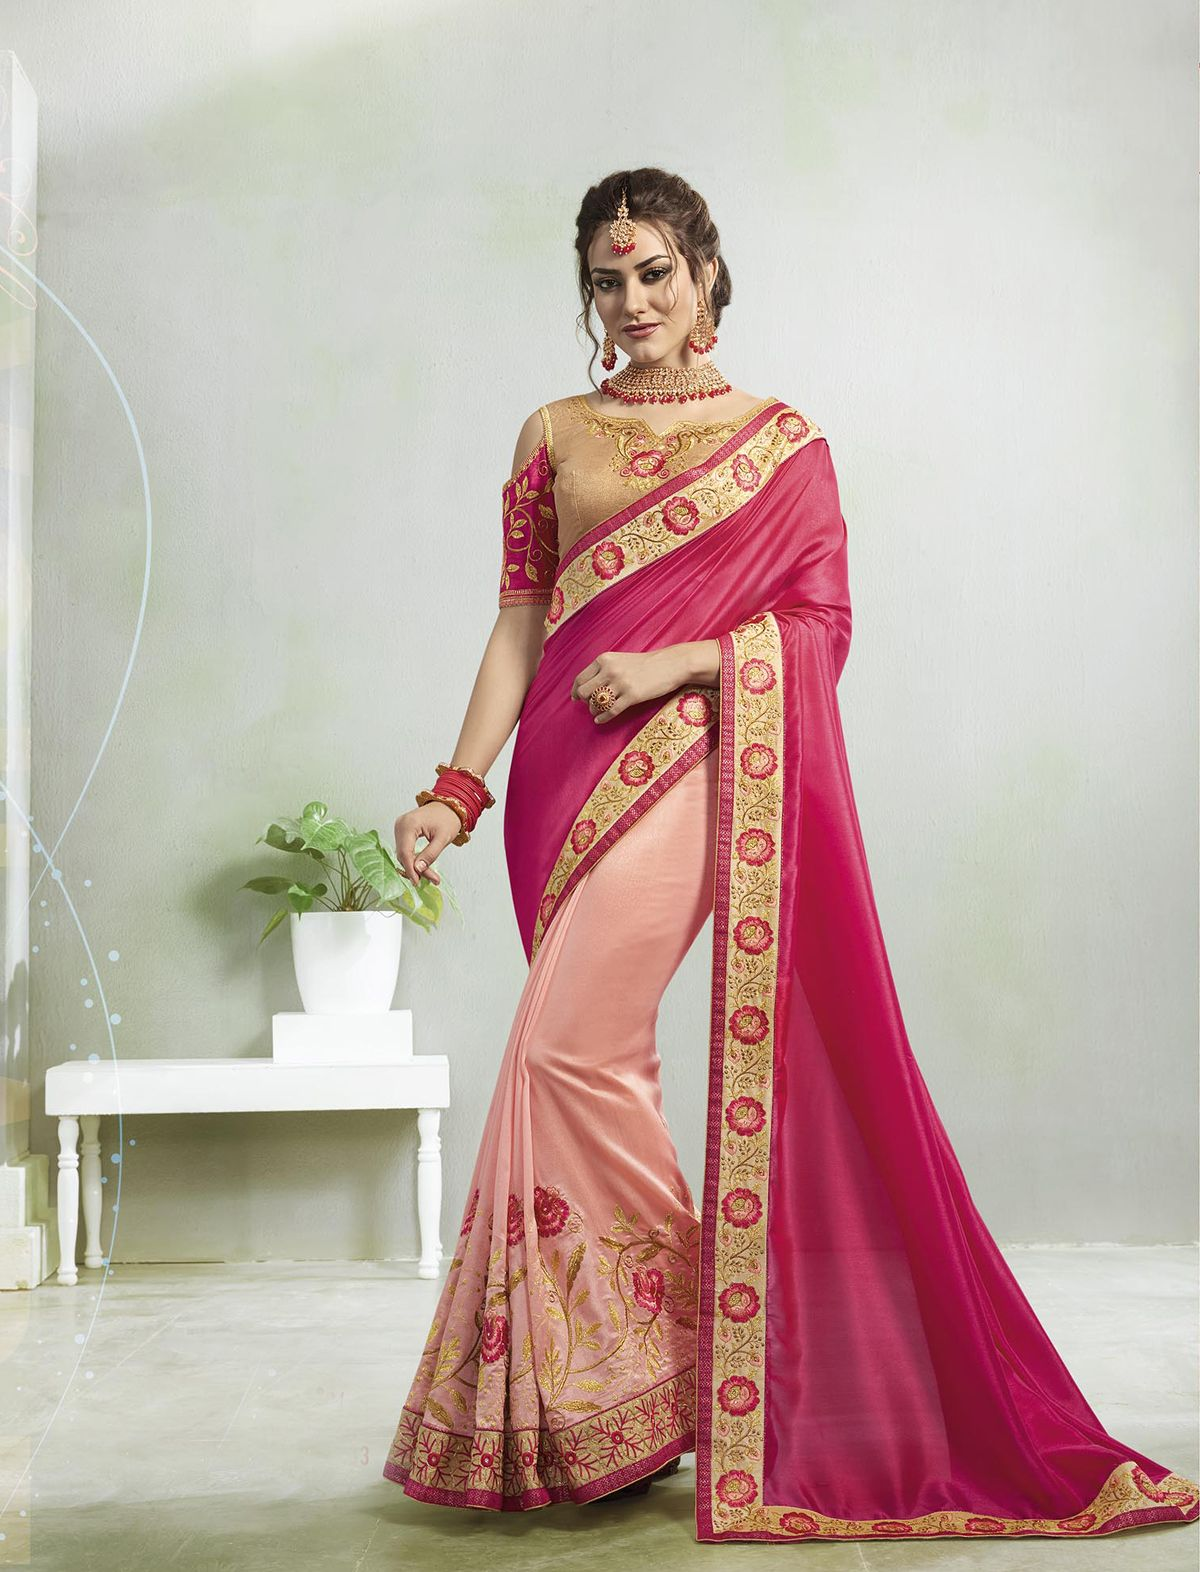 8035db5916 Experience the online shopping for indian traditional saree. Order this  fetching embroidered and zari work hot pink designer saree.